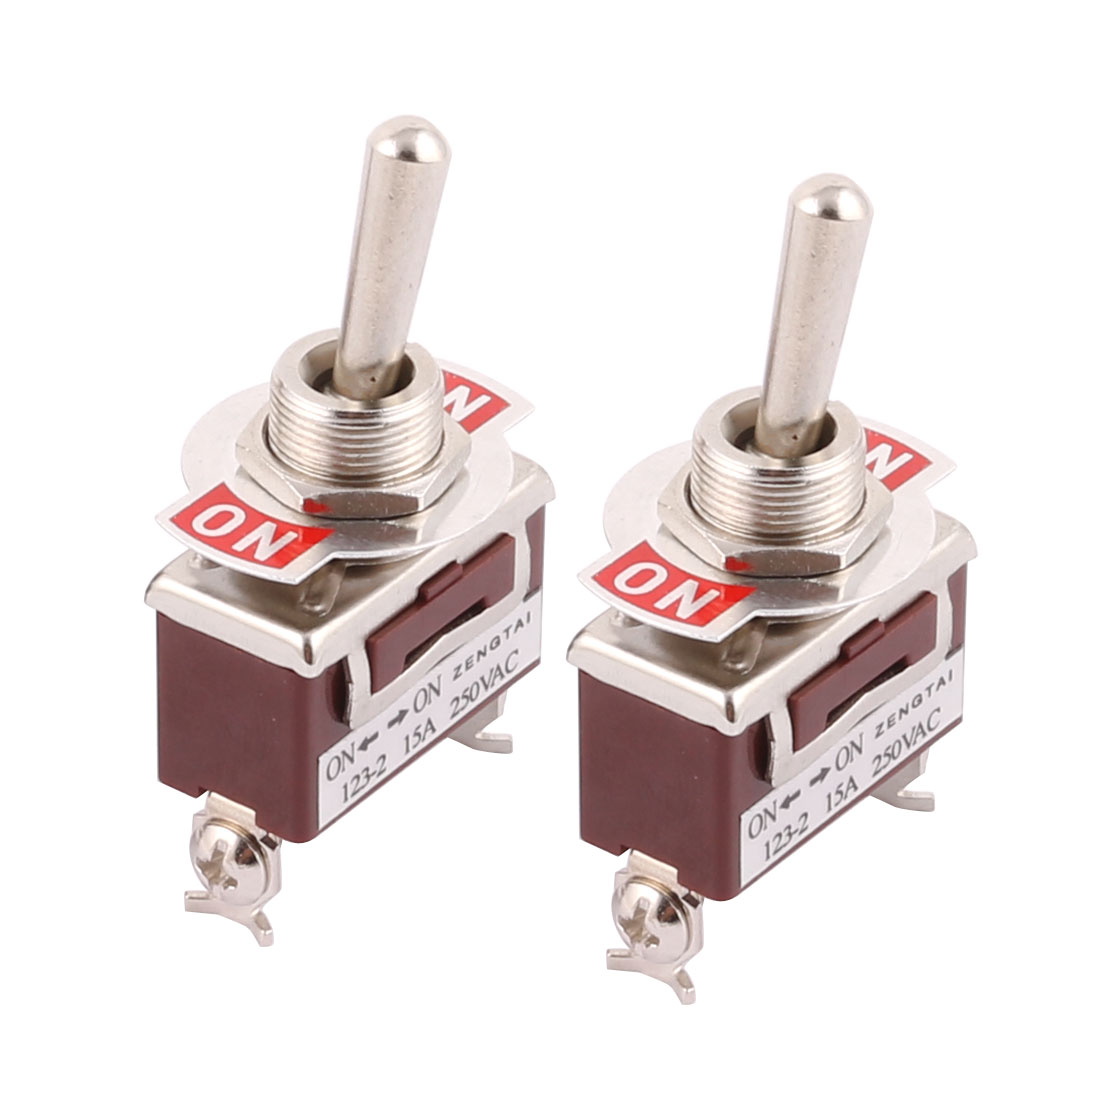 2 Pcs AC 250V 15A ON/ON 2 Position SPDT Momentary Toggle Switch Brown